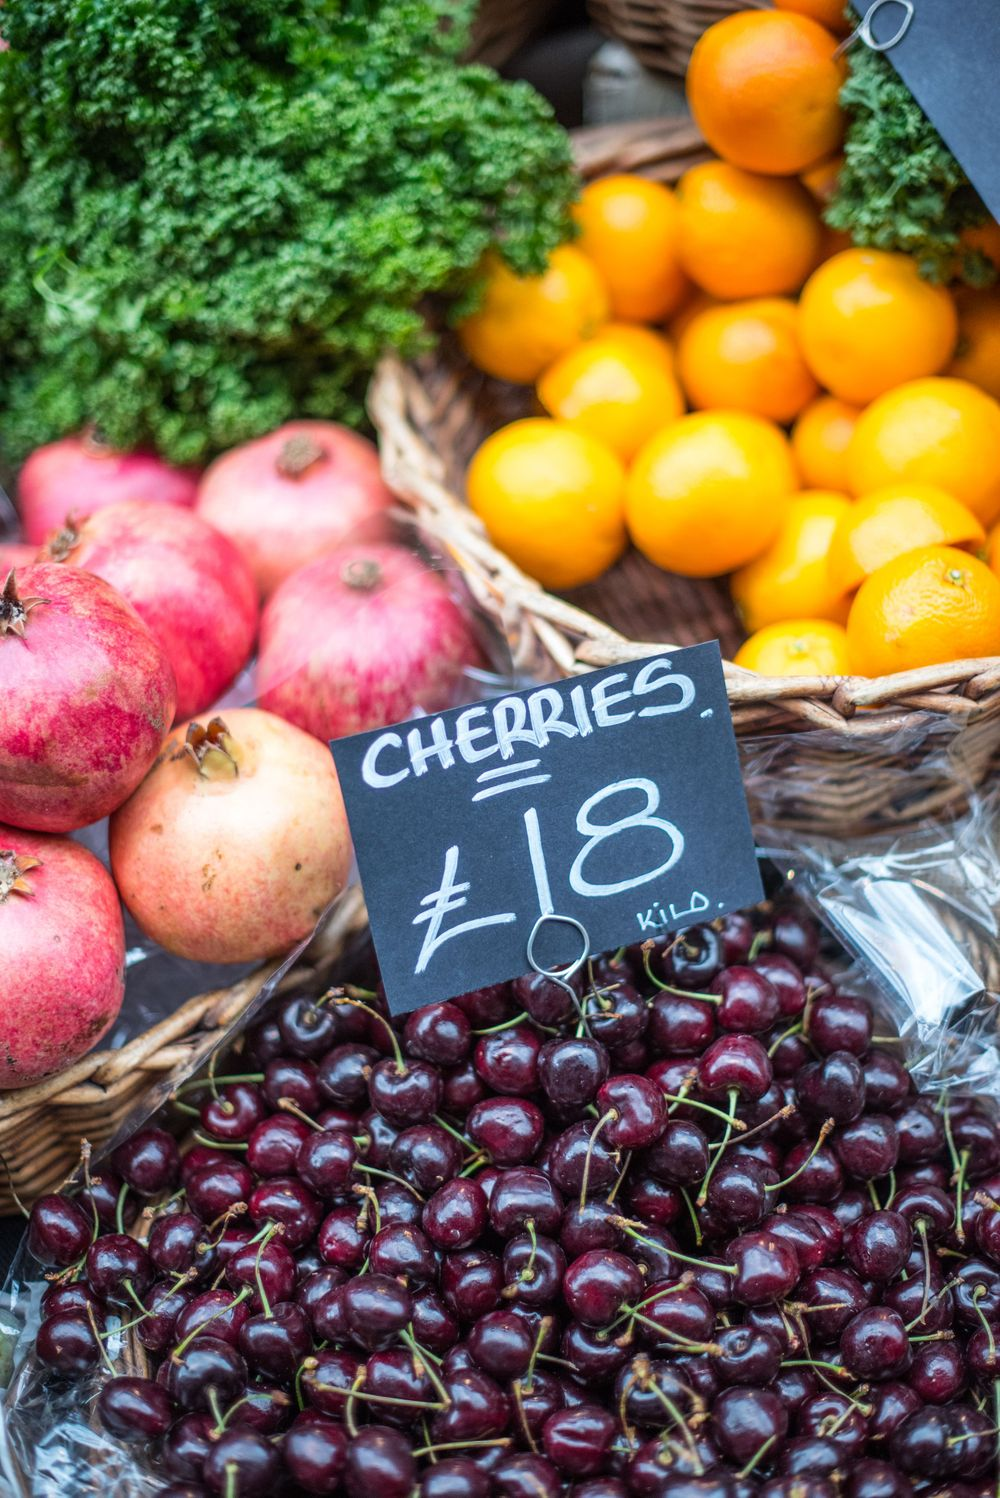 Cherries, oranges, and pomegranates at Borough Market, London